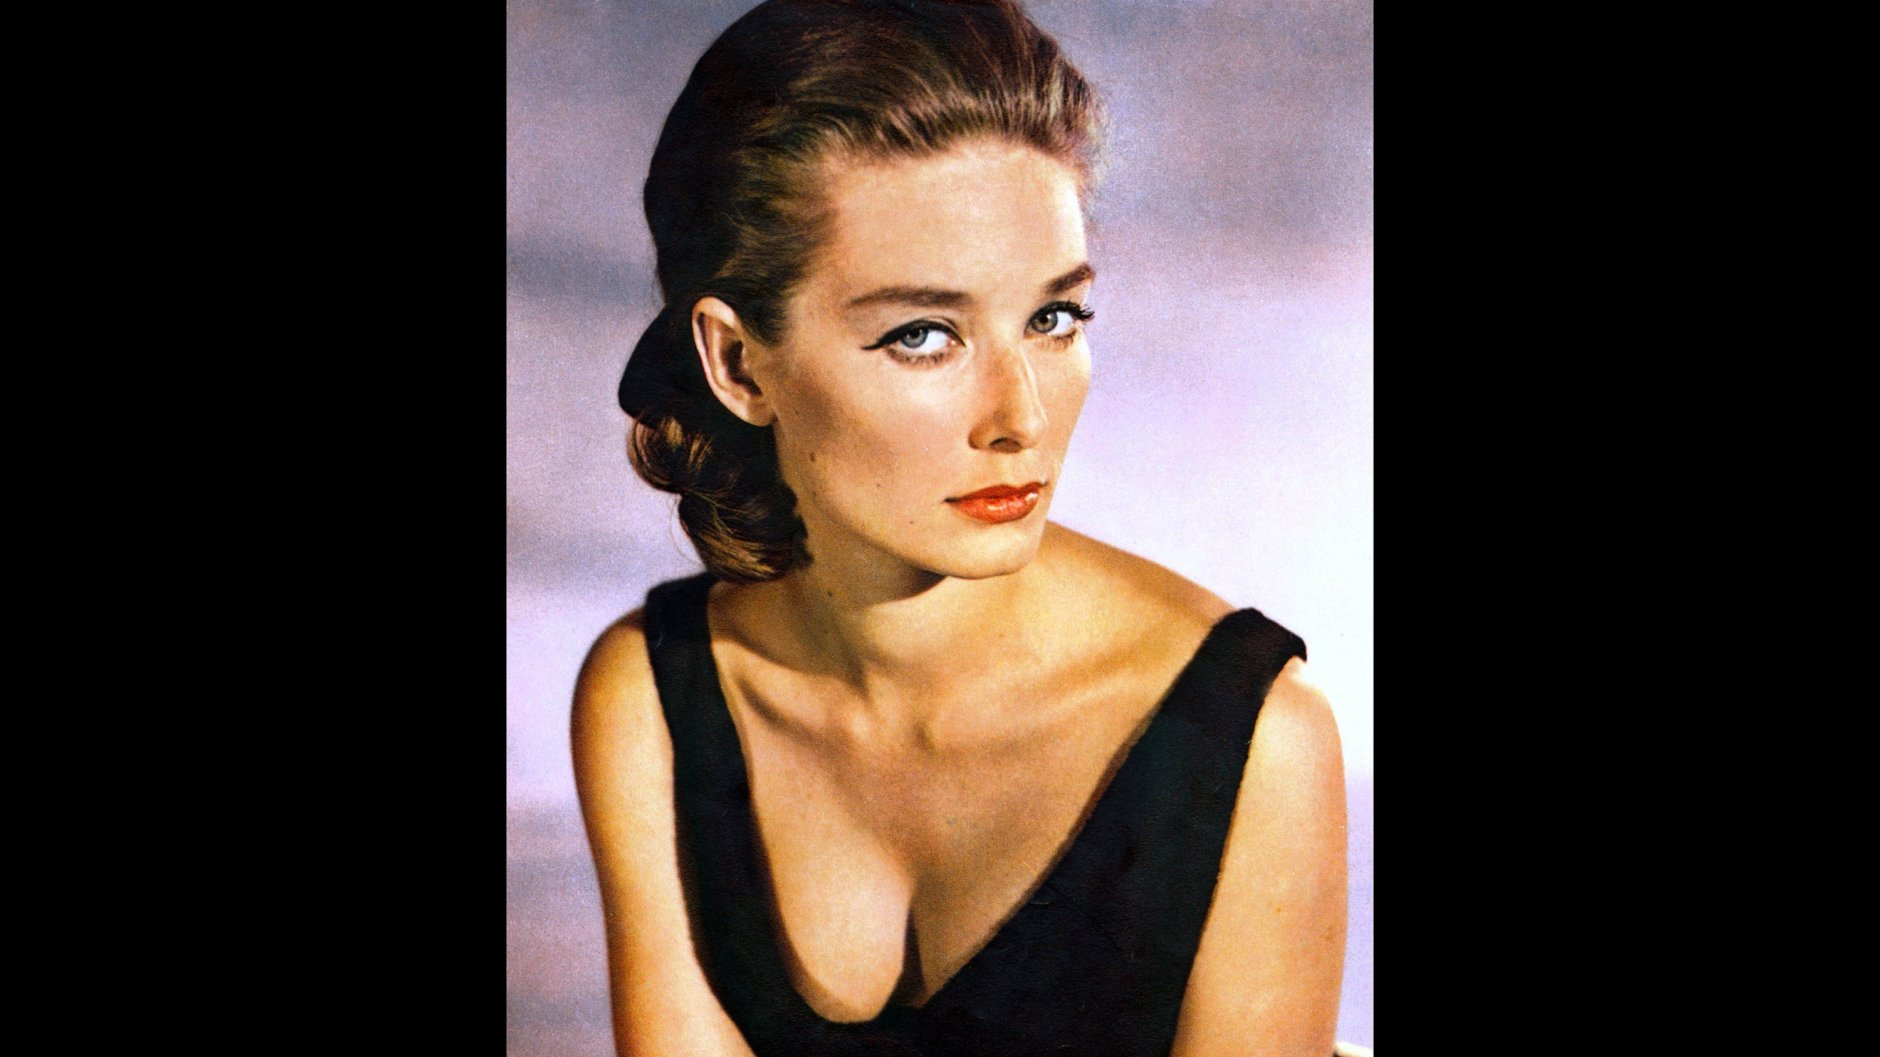 Actress Tania Mallet played Tilly Masterson in 'Goldfinger' in 1964.